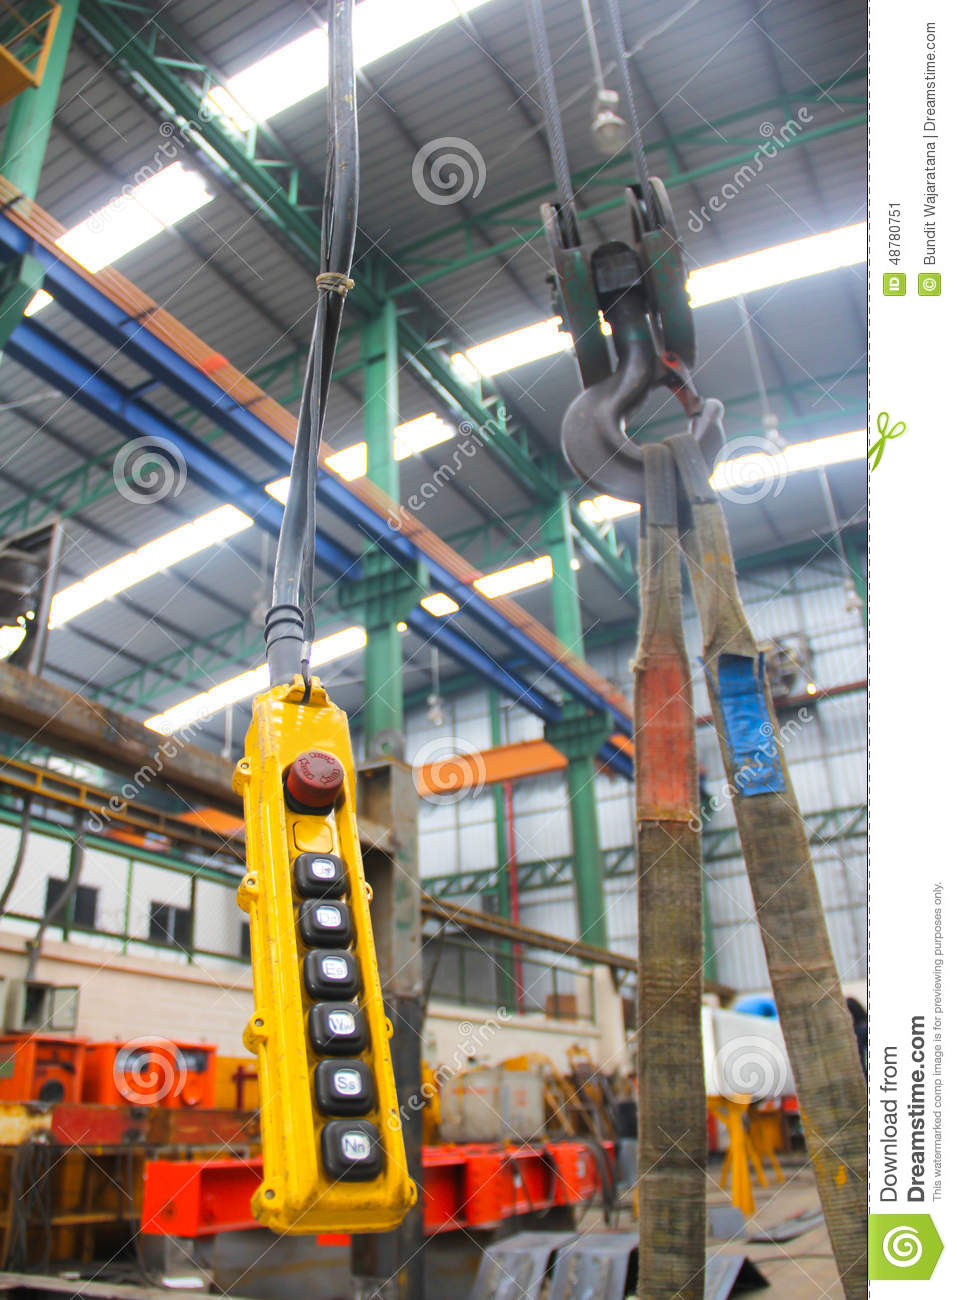 Overhead Crane Remote Safety : Remote and old hoist stock image of corrosive